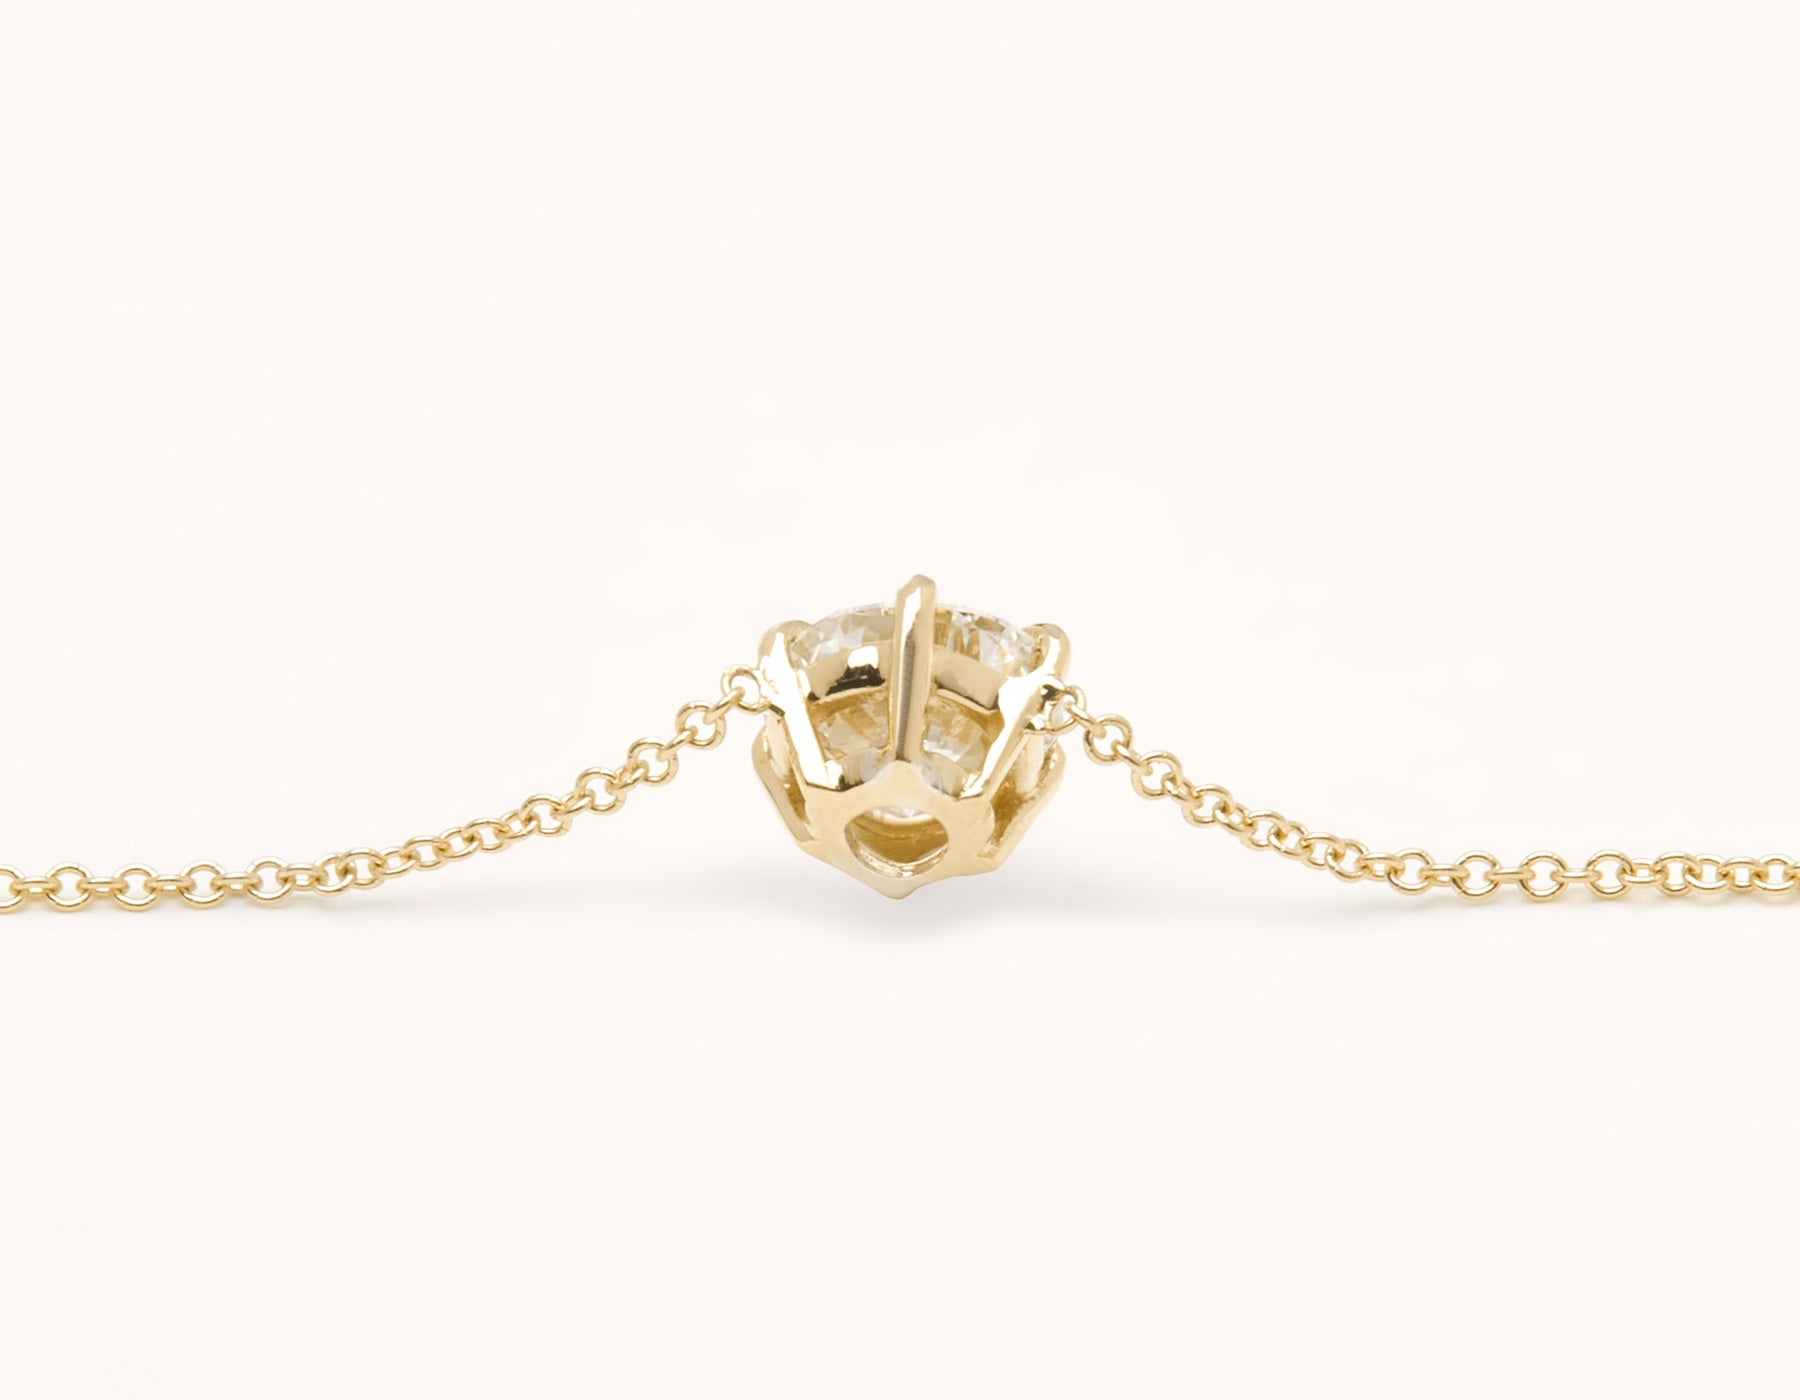 Simple modern 18k solid gold 1.0 ct Round Brilliant Diamond Necklace 6 prong setting on thin chain with lobster clasp Vrai and Oro, 18K Yellow Gold